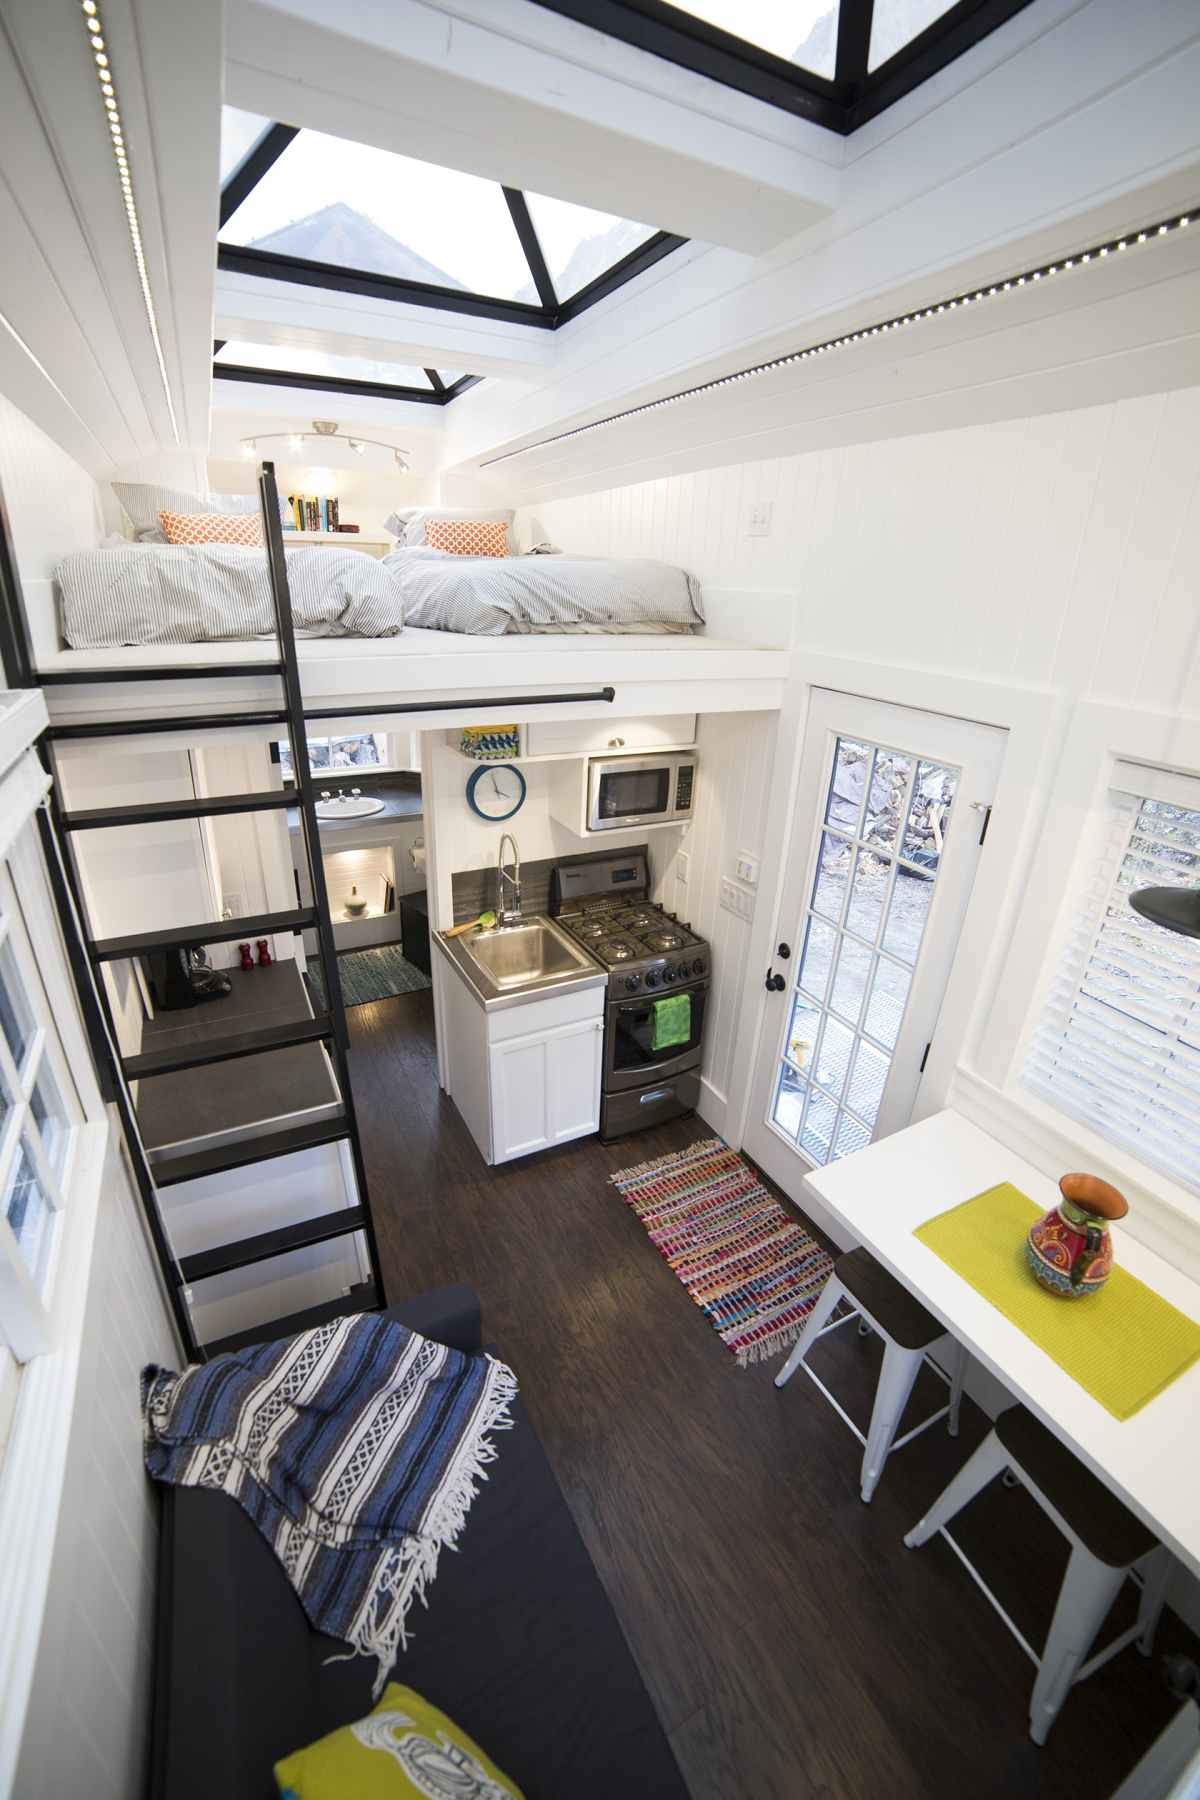 The loft bedroom can be reached by climbing a ladder